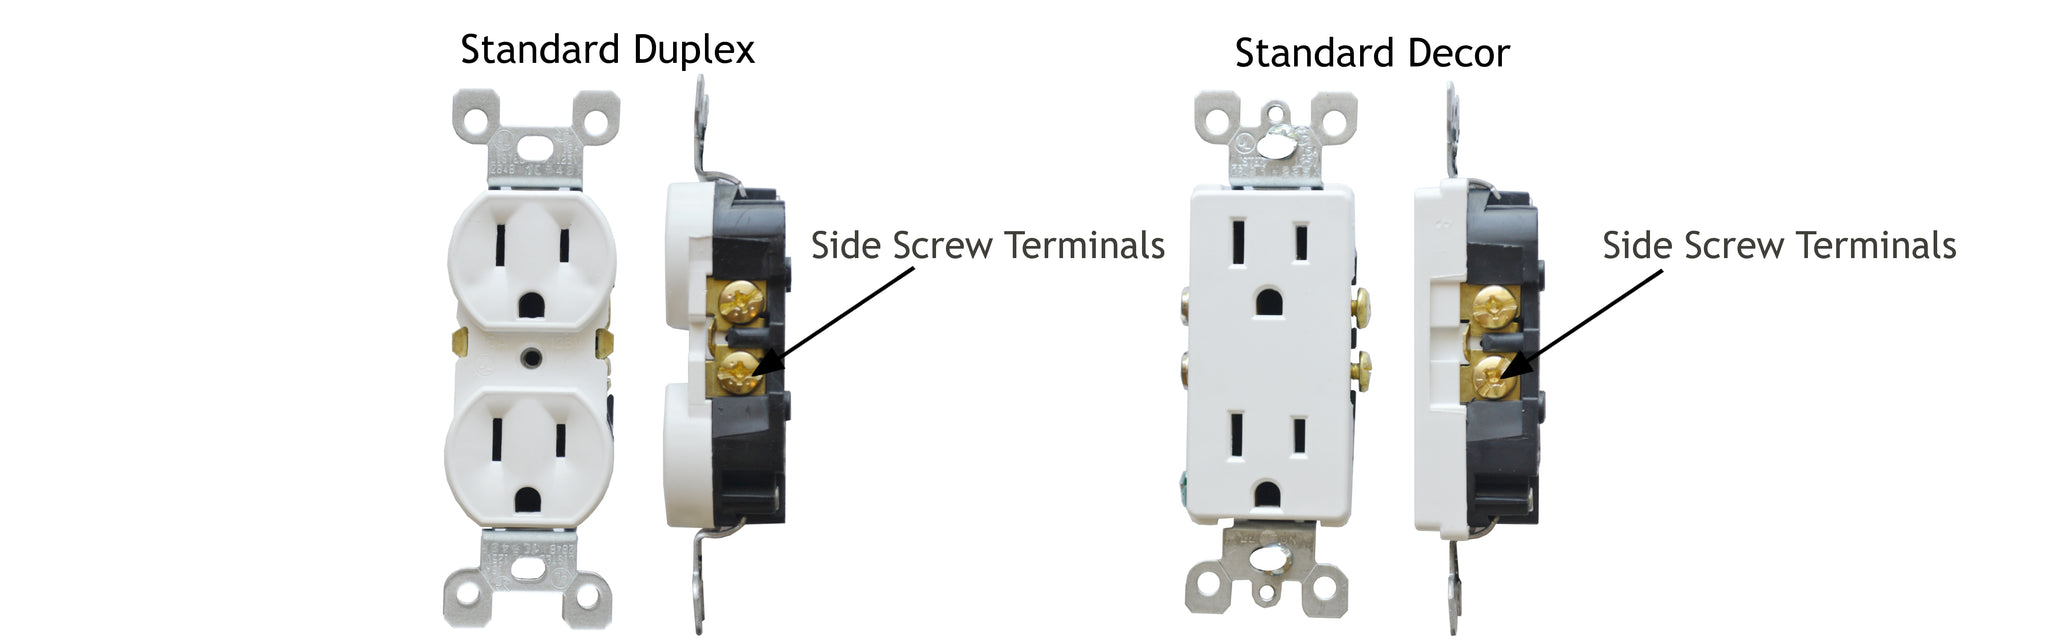 Install And Troubleshooting 2 Snappower How A Circuit Breaker Works The Guidelight Is Equipped With Two Insulated Power Prongs Located On Back Side Both Are Conductive Rivets Designed To